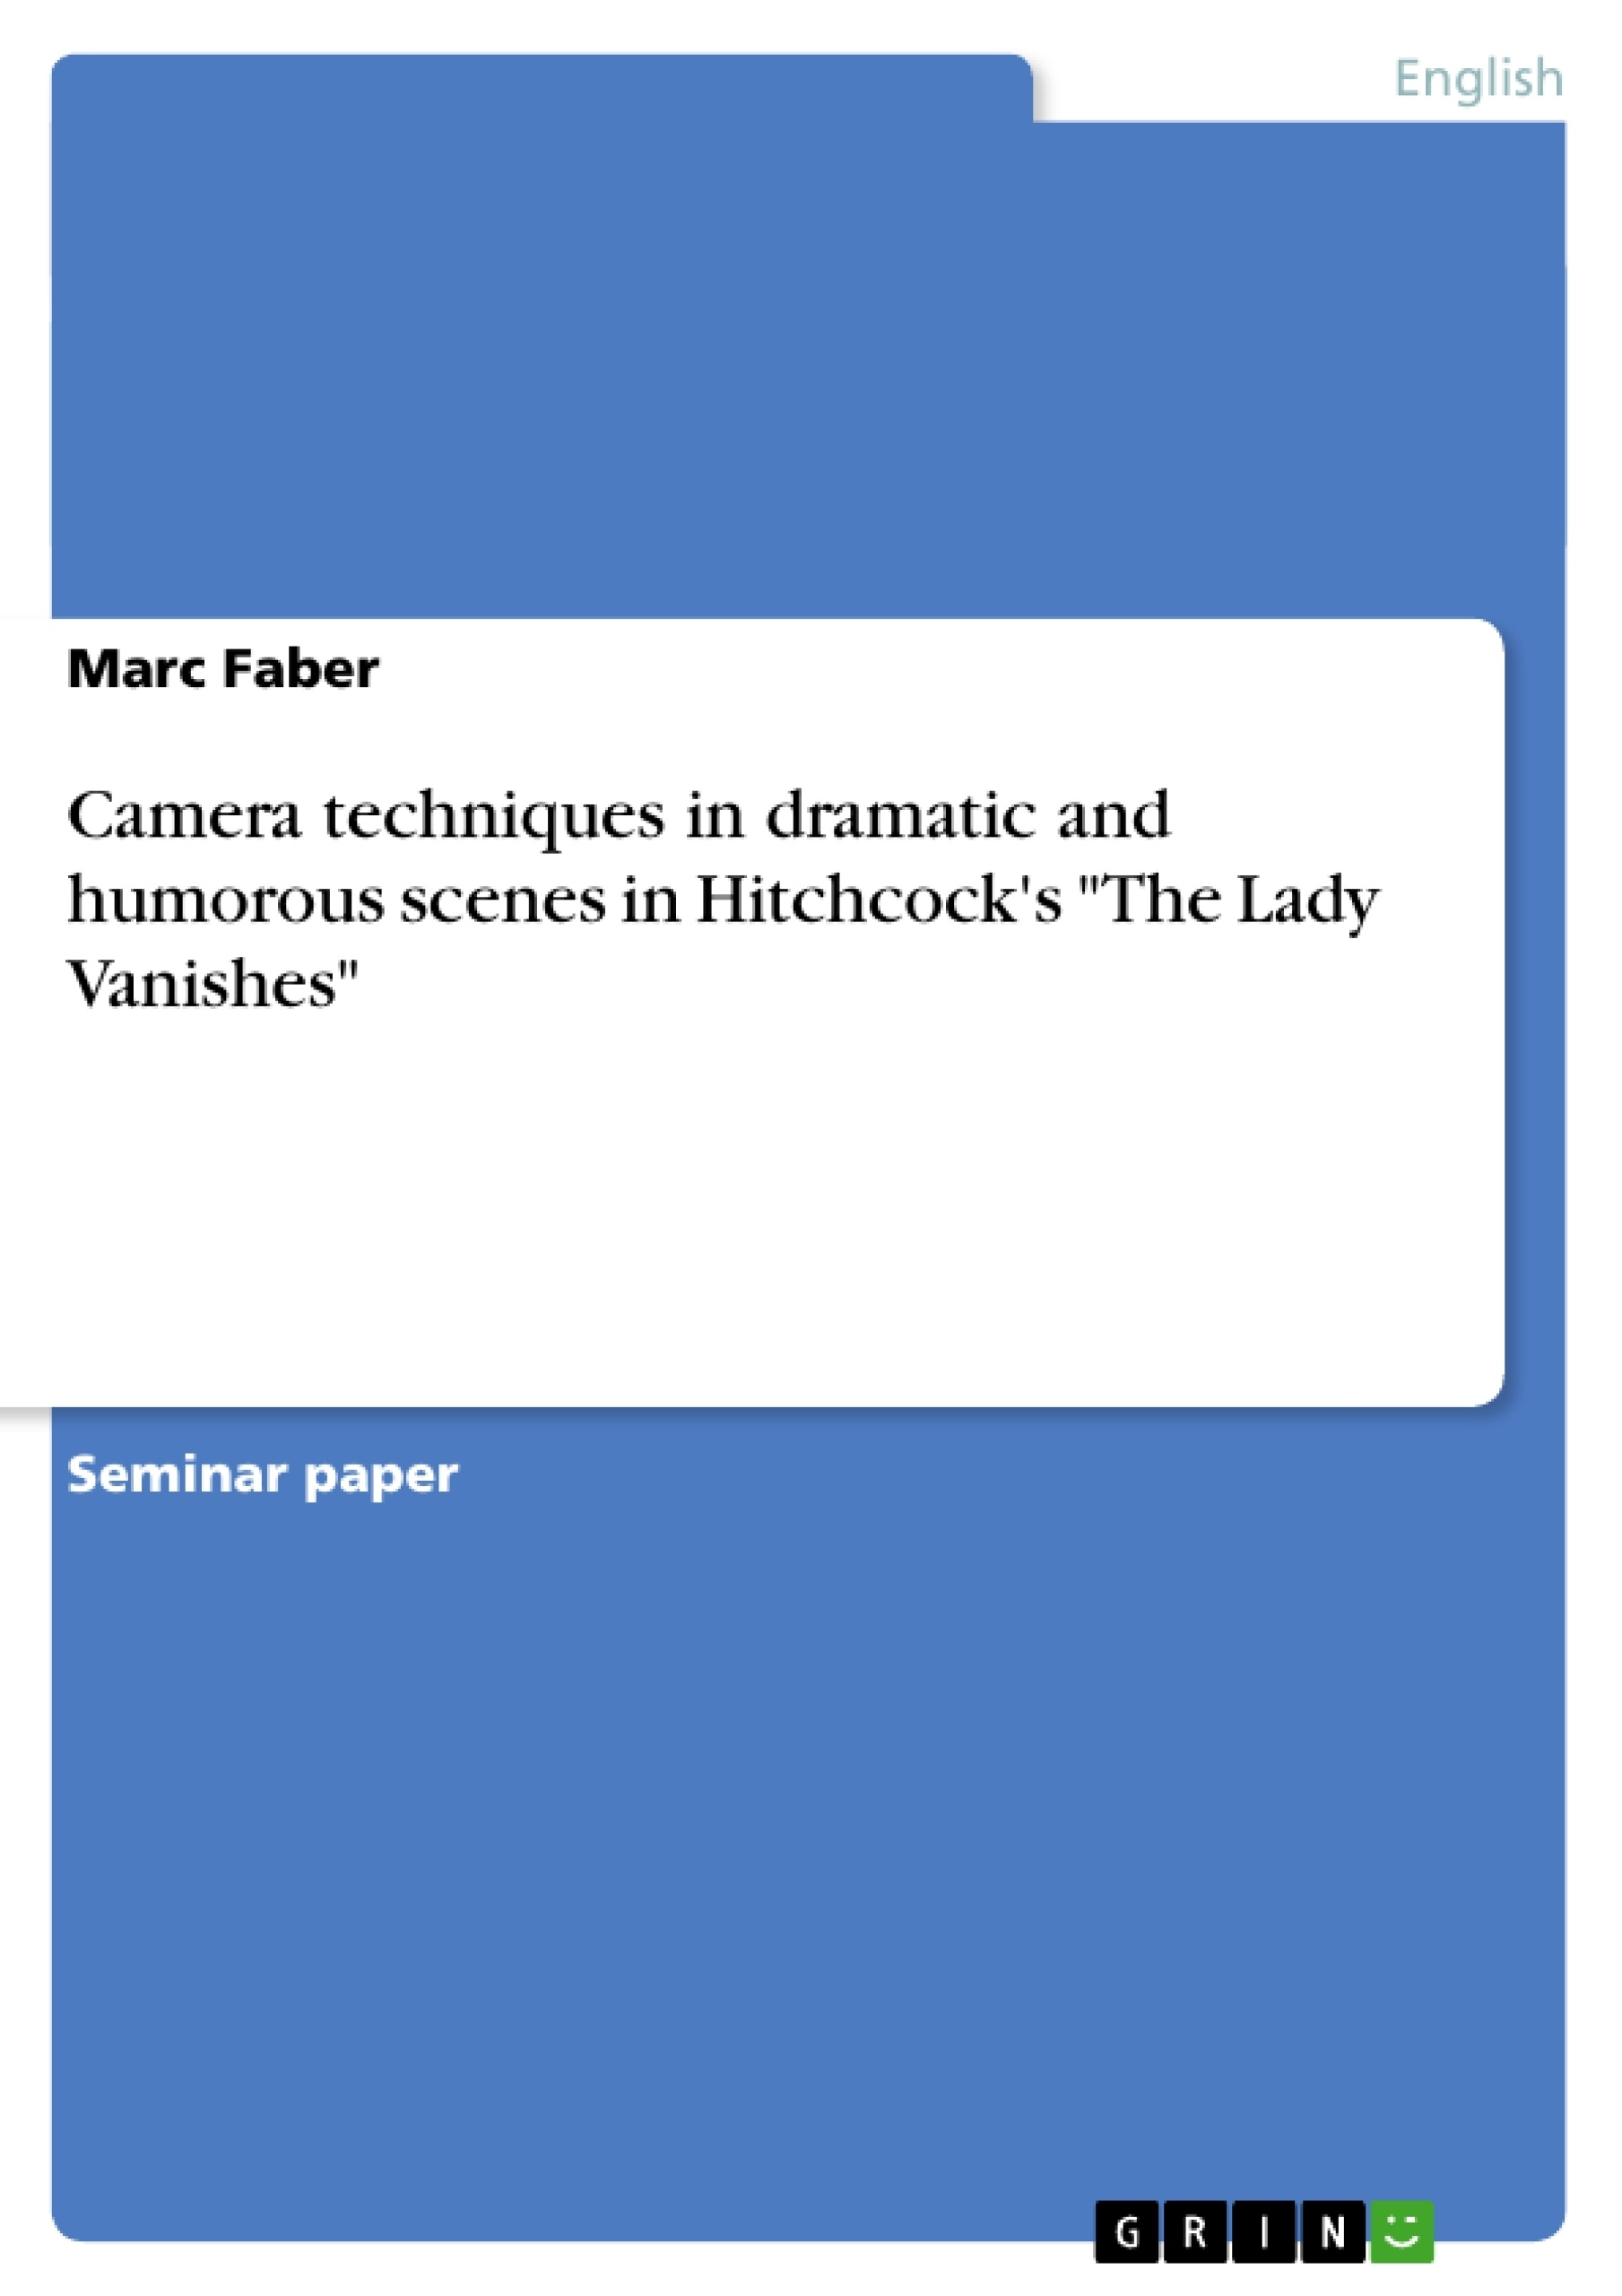 """Title: Camera techniques in dramatic and humorous scenes in Hitchcock's """"The Lady Vanishes"""""""